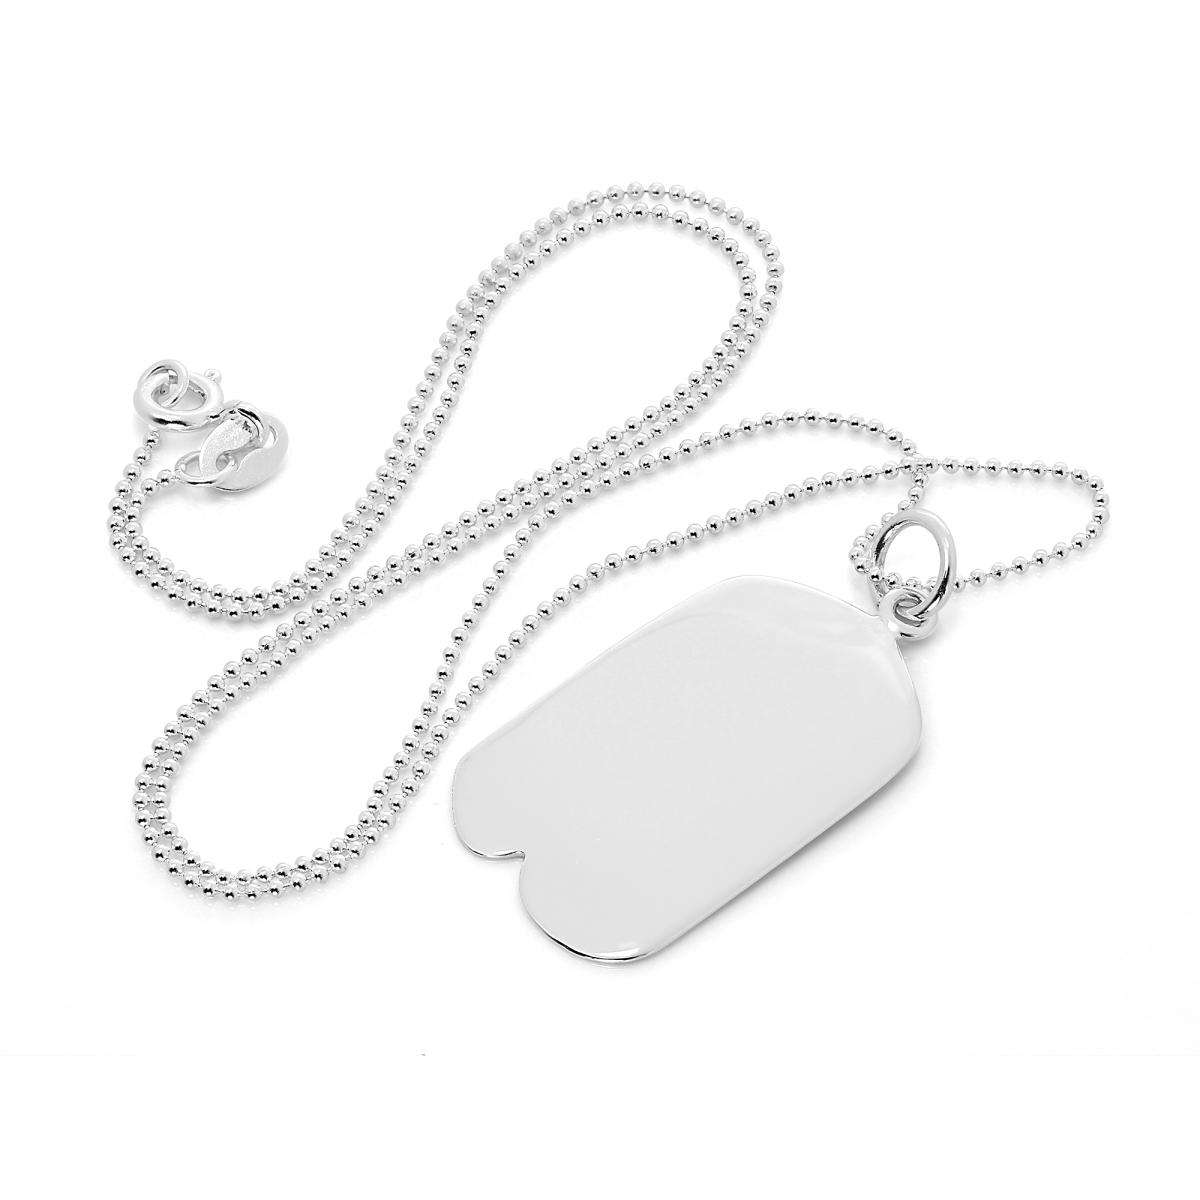 Alterative image for Large Sterling Silver Engravable Pendant with Dimple